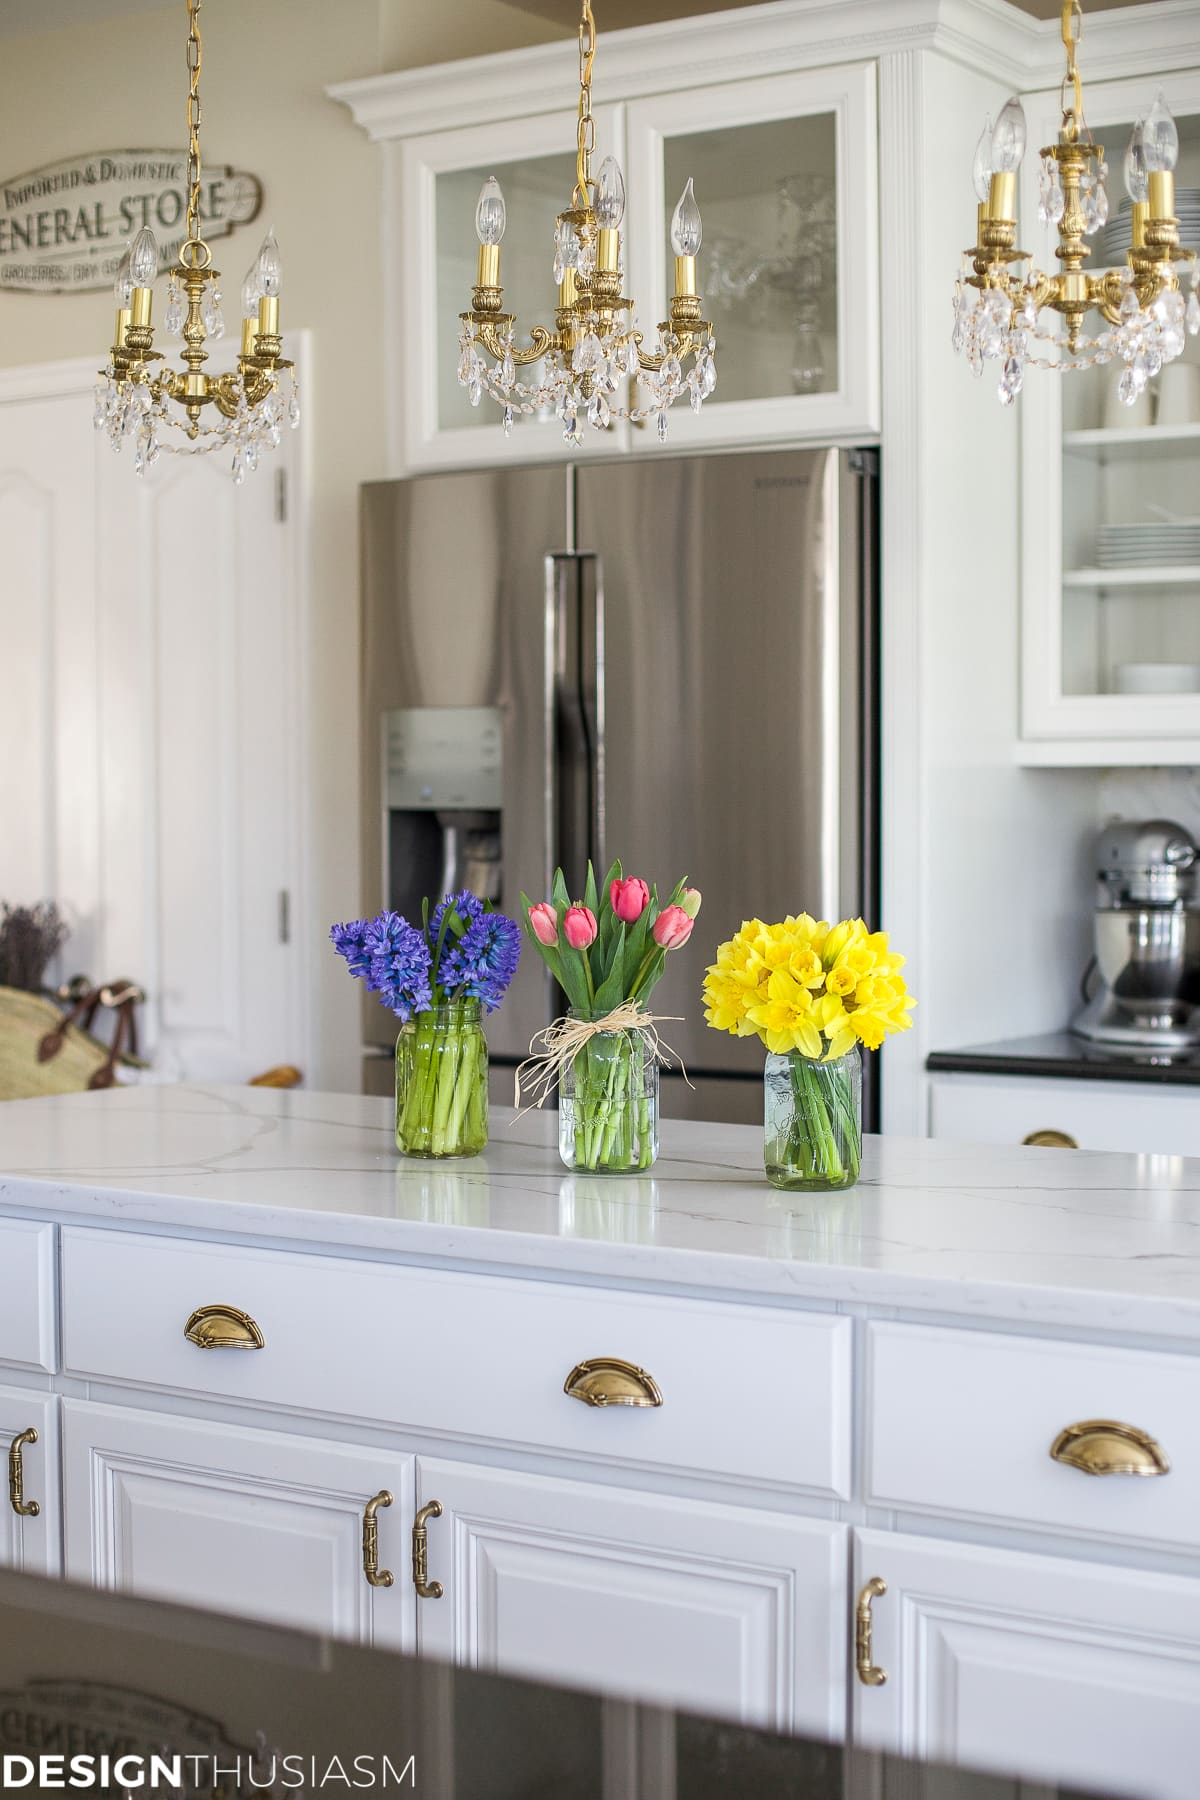 Spring Room Decor 6 Ways to Add Spring Cheer to Your Kitchen